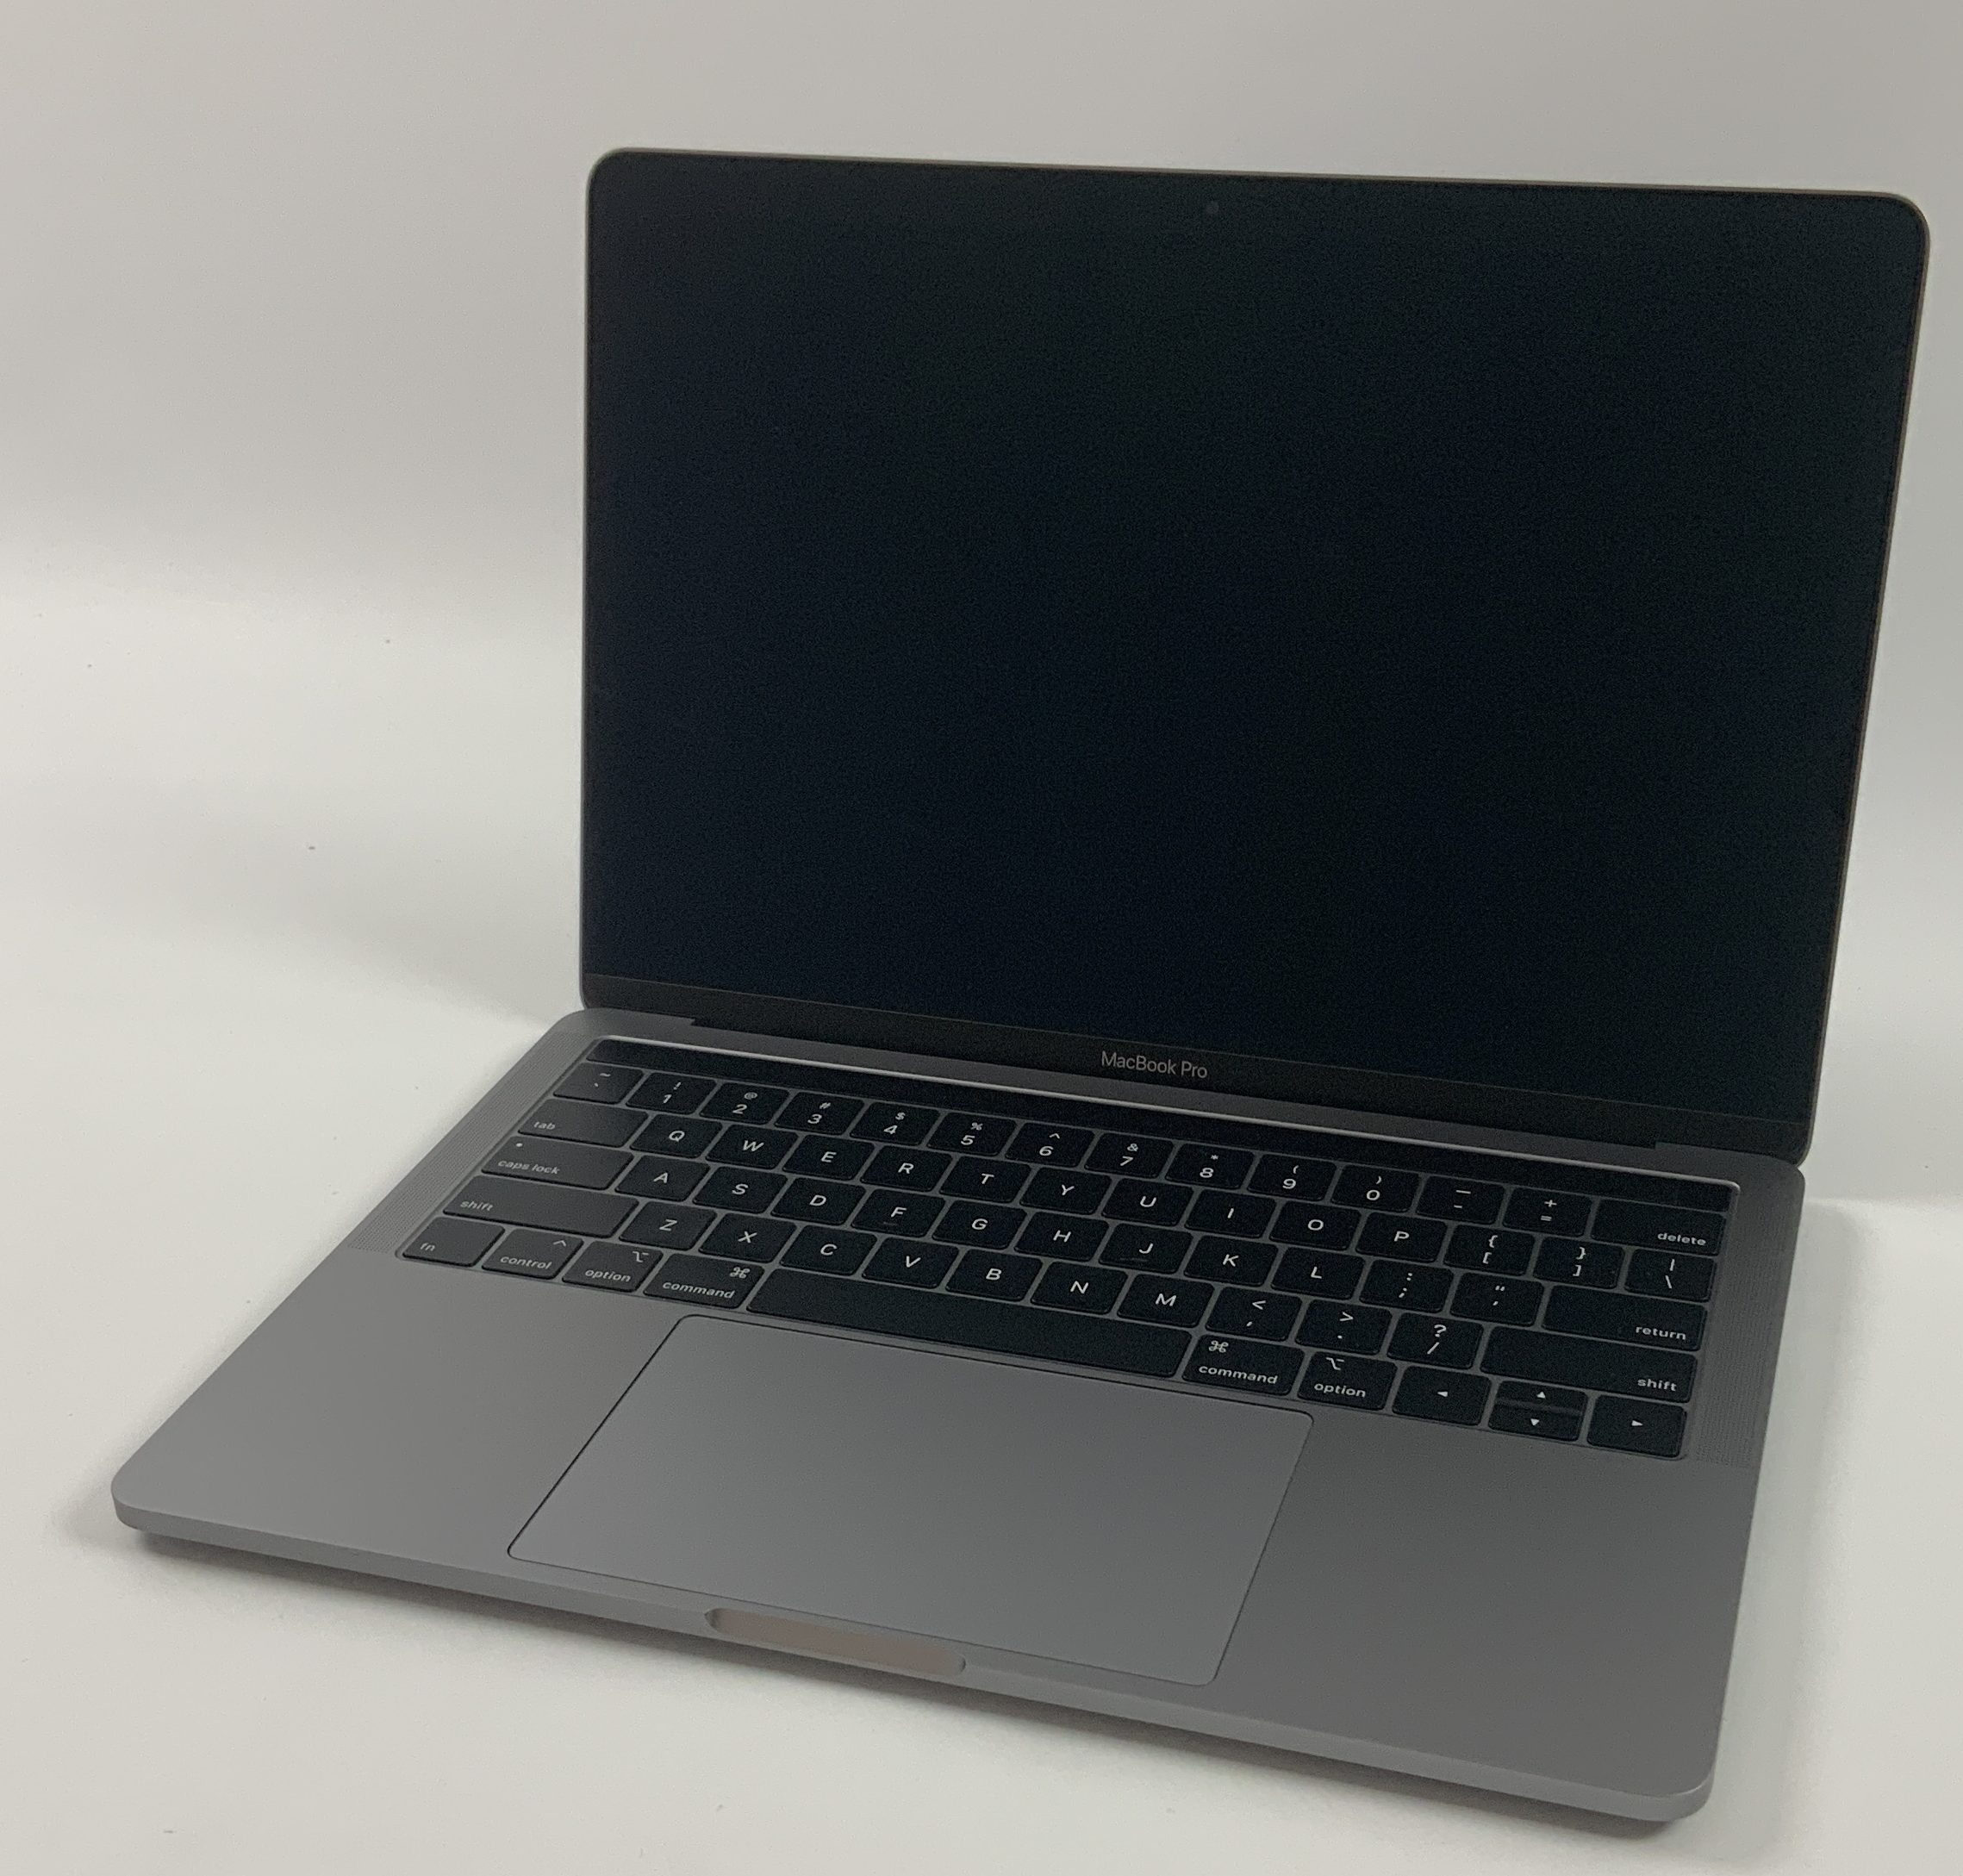 "MacBook Pro 13"" 4TBT Mid 2019 (Intel Quad-Core i5 2.4 GHz 16 GB RAM 256 GB SSD), Space Gray, Intel Quad-Core i5 2.4 GHz, 16 GB RAM, 256 GB SSD, bild 1"